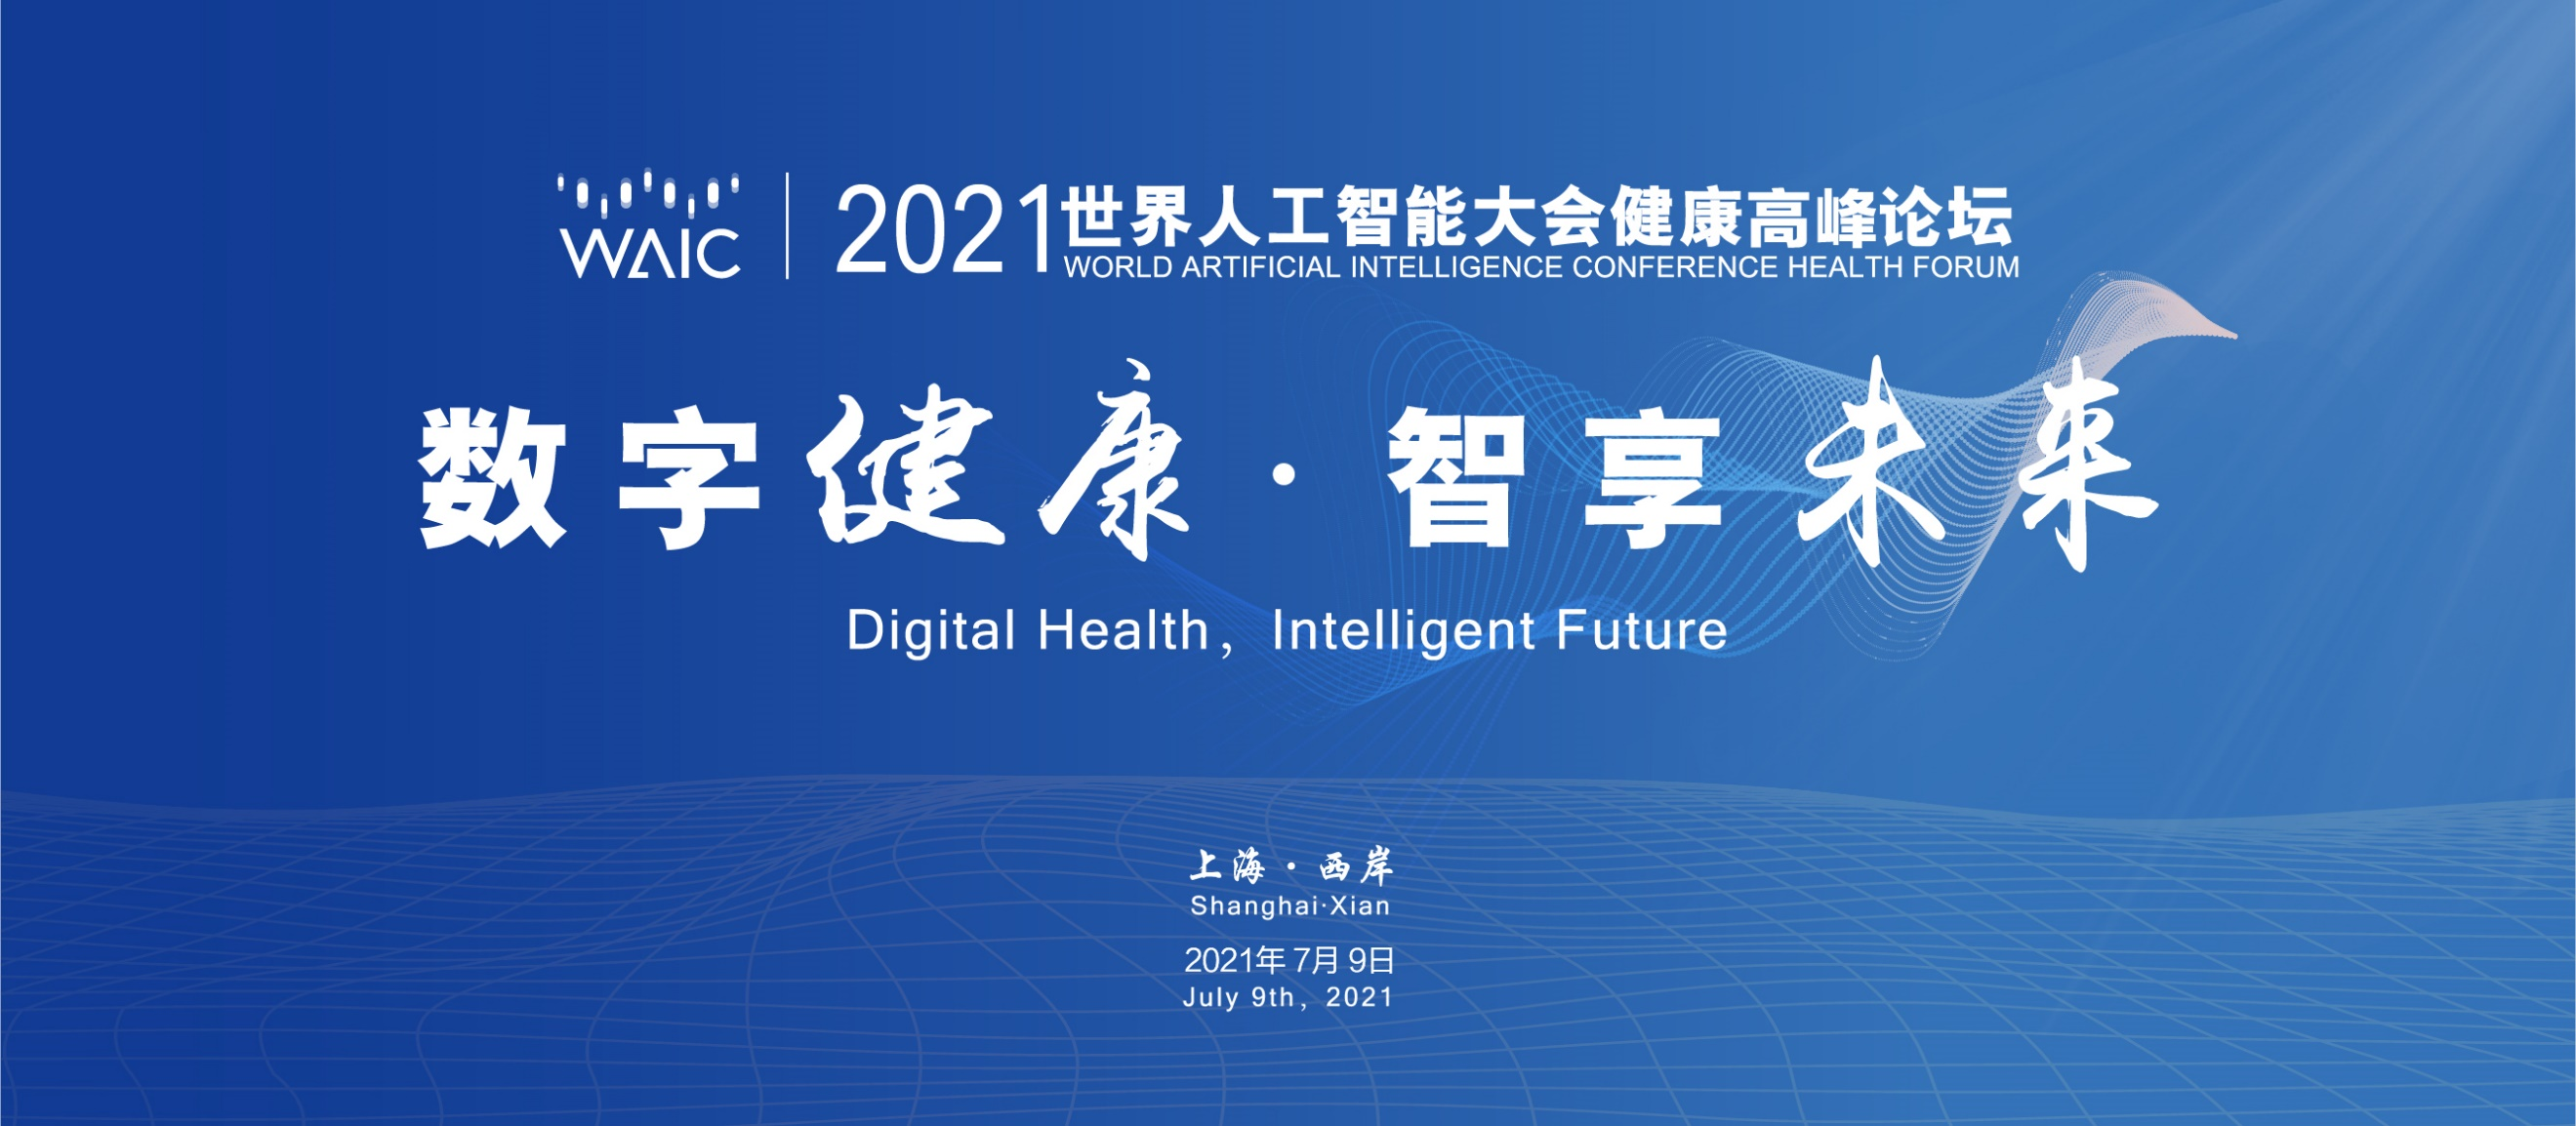 Digital health, smart future | 2021 World Artificial Intelligence Conference Health Summit Forum grandly opened in Shanghai on July 9_detailed interpretation_latest information_hot events_36氪